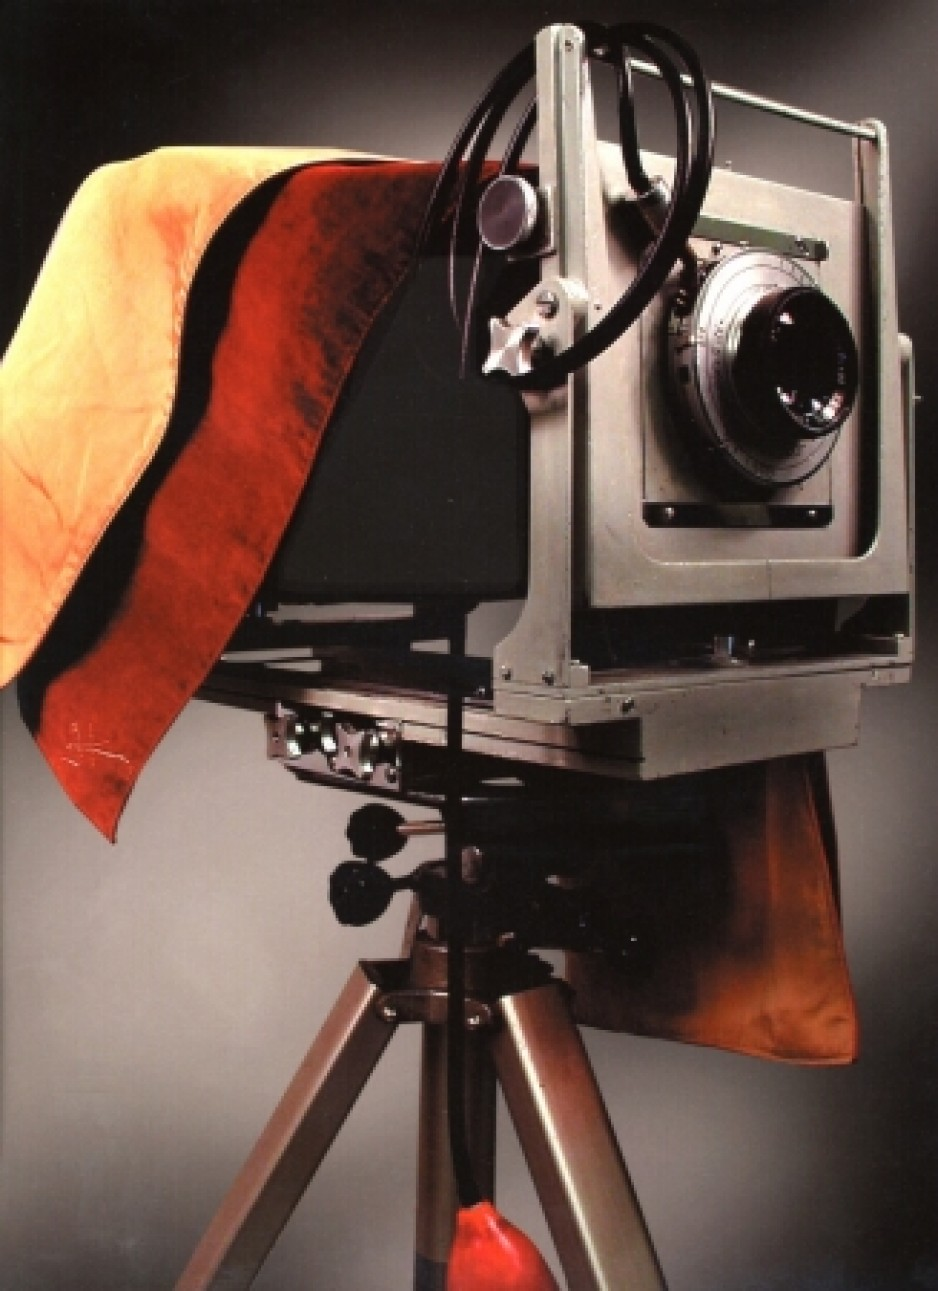 Main camera used by a prominent Canadian photographer Yousuf Karsh.